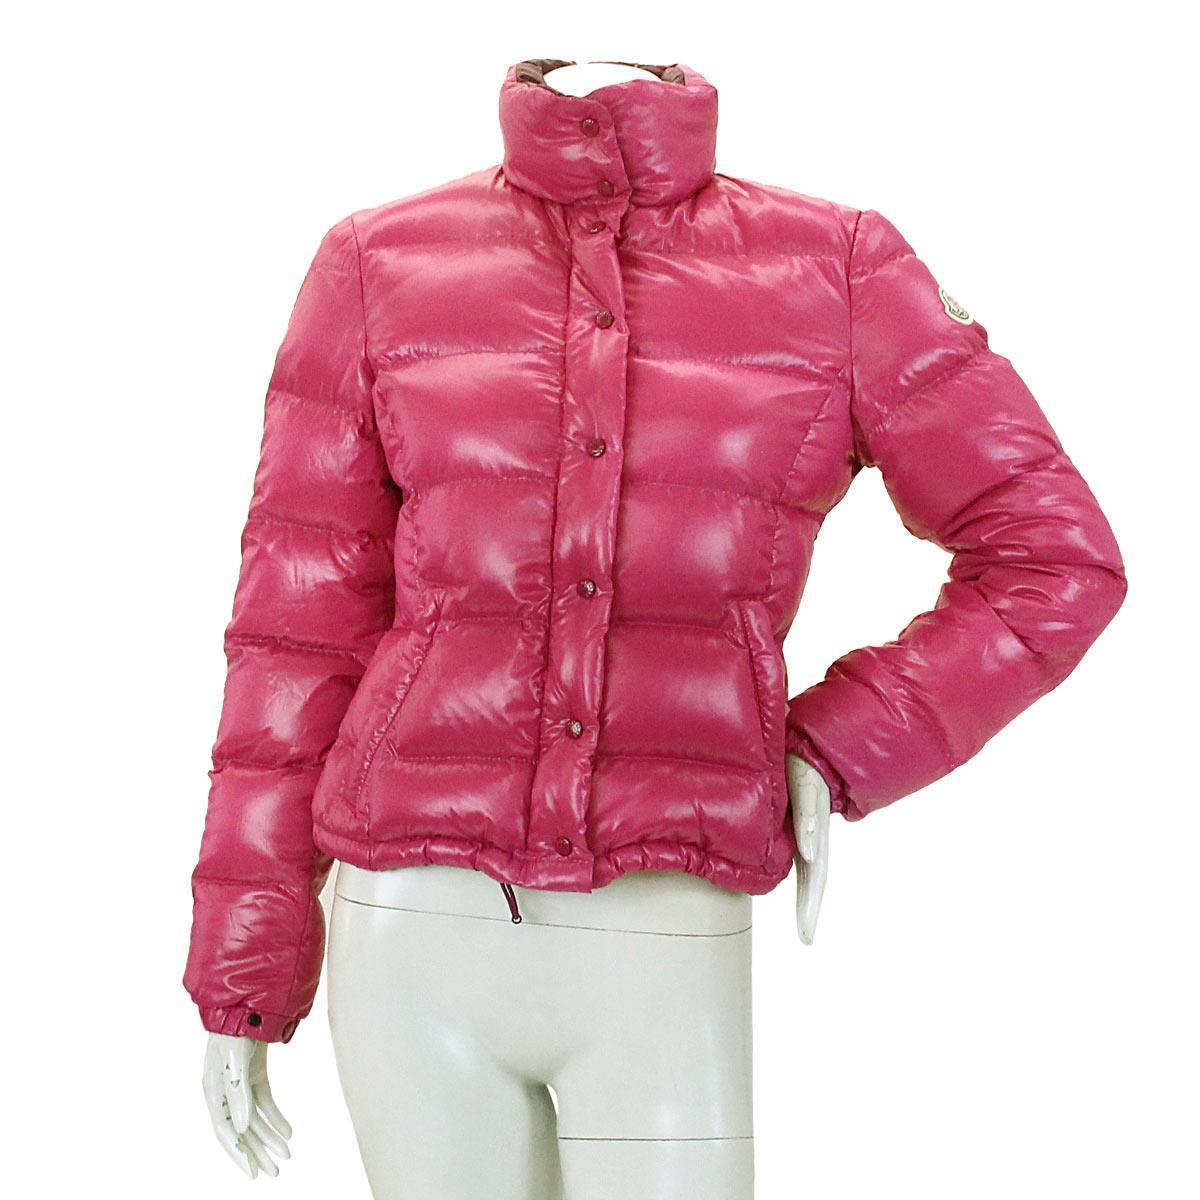 Details about Auth MONCLER Down jacket Pink Purple Nylon CLAIRY Puffer 0  Women s 90026065 f34ed3438